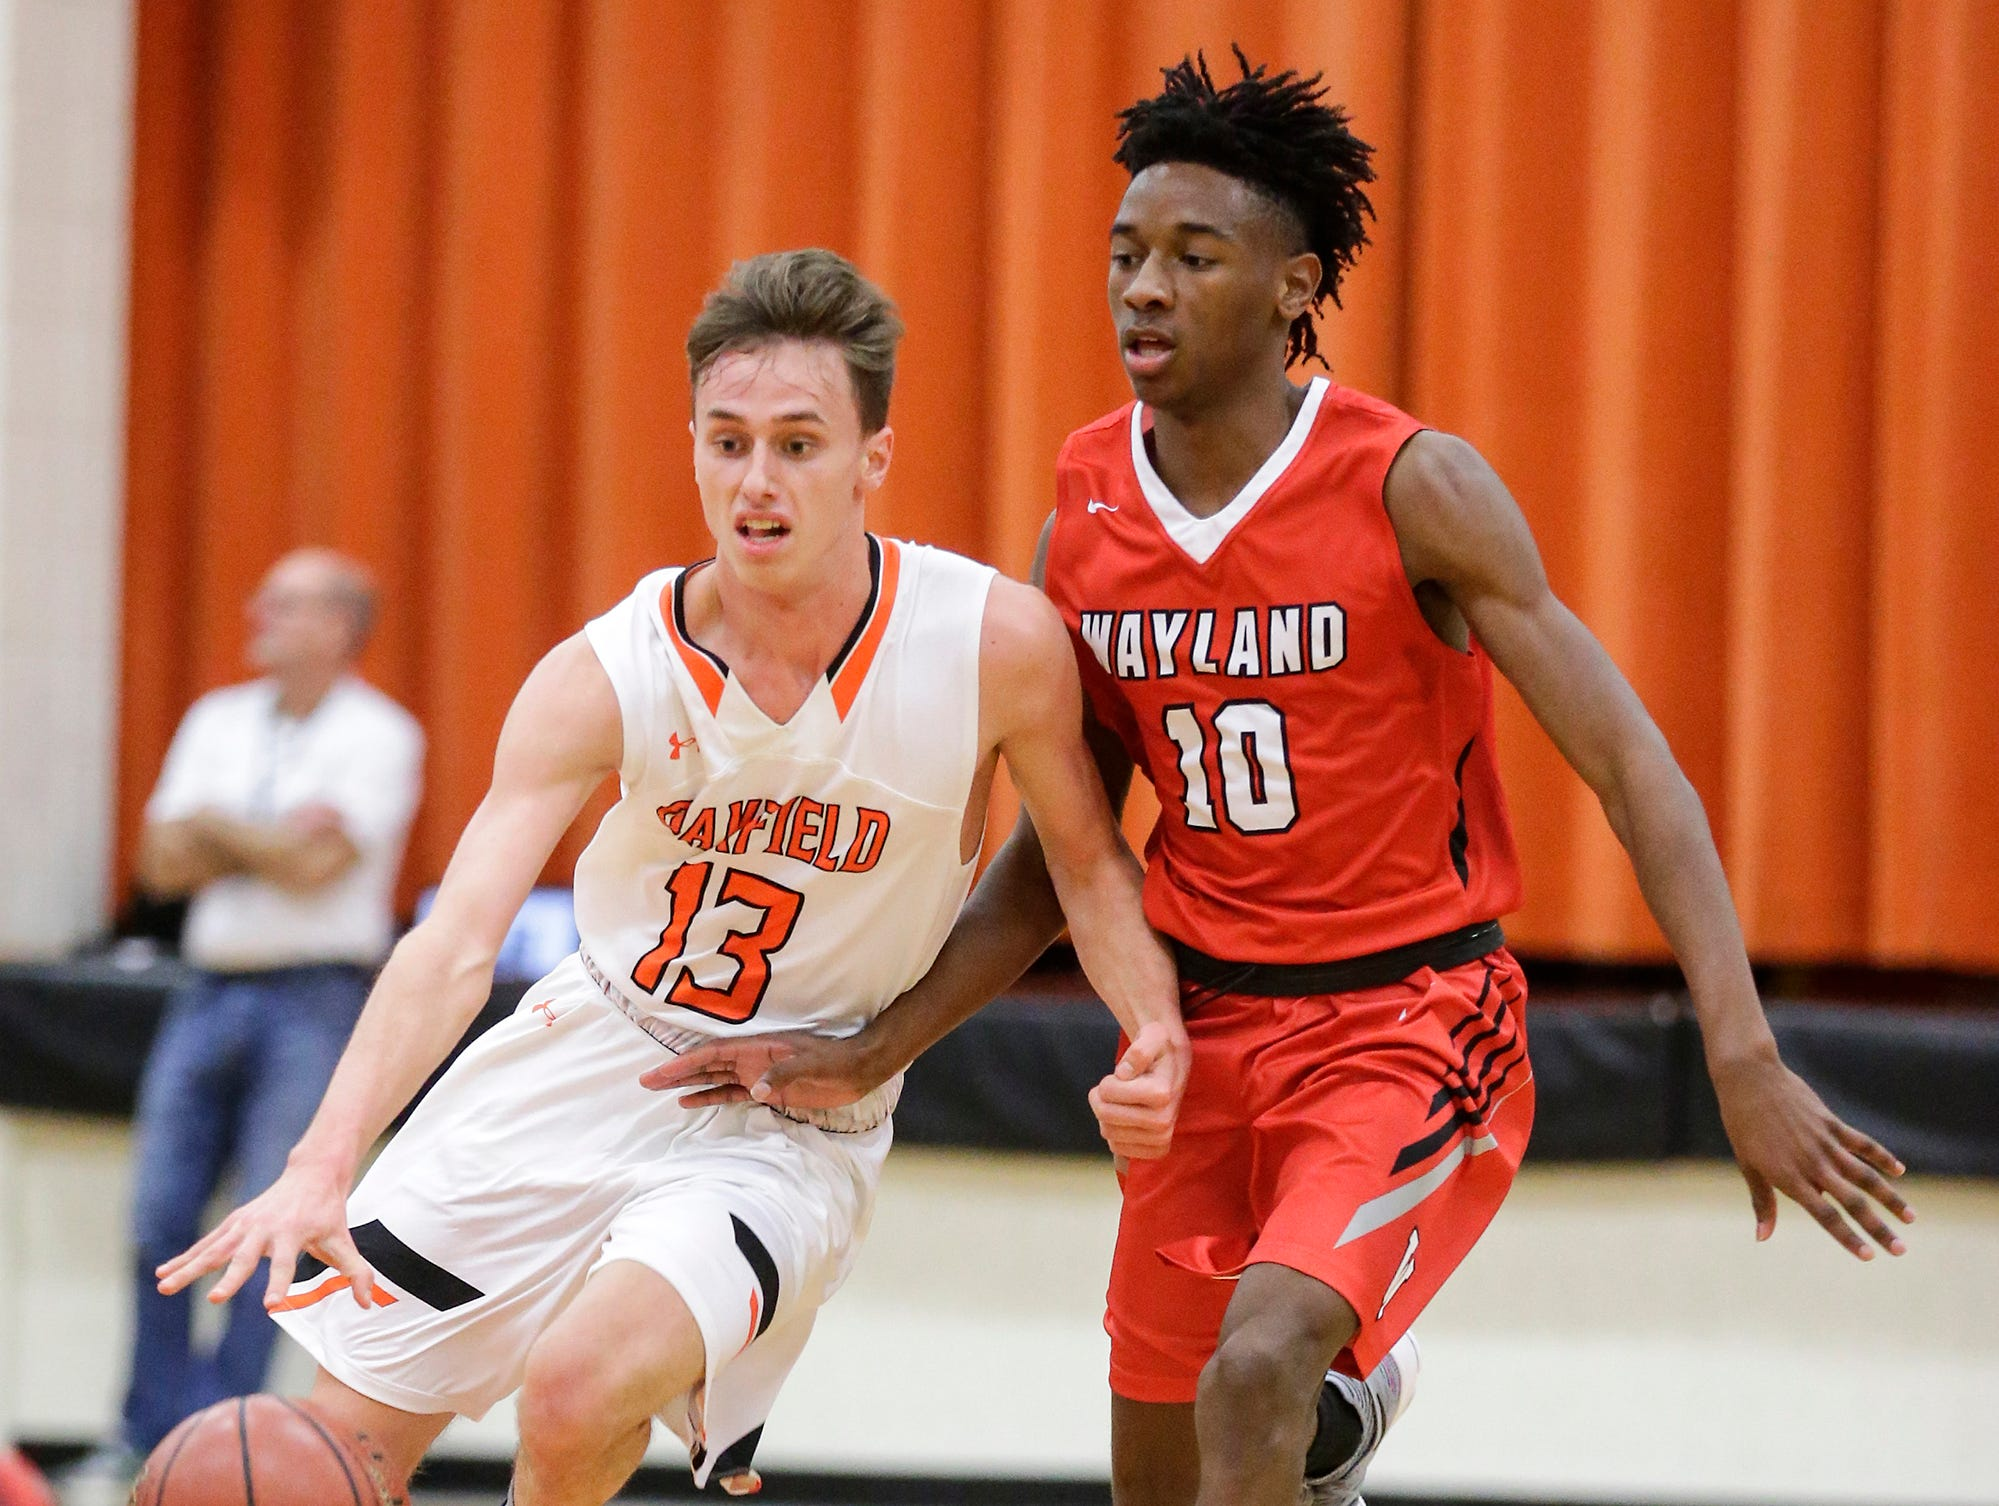 Oakfield High School boys basketball's Tyler Streeter drives down court against Wayland Academy's Issac Eubanks January 11, 2019 during their game in Oakfield. Oakfield won the game 56-48. Doug Raflik/USA TODAY NETWORK-Wisconsin